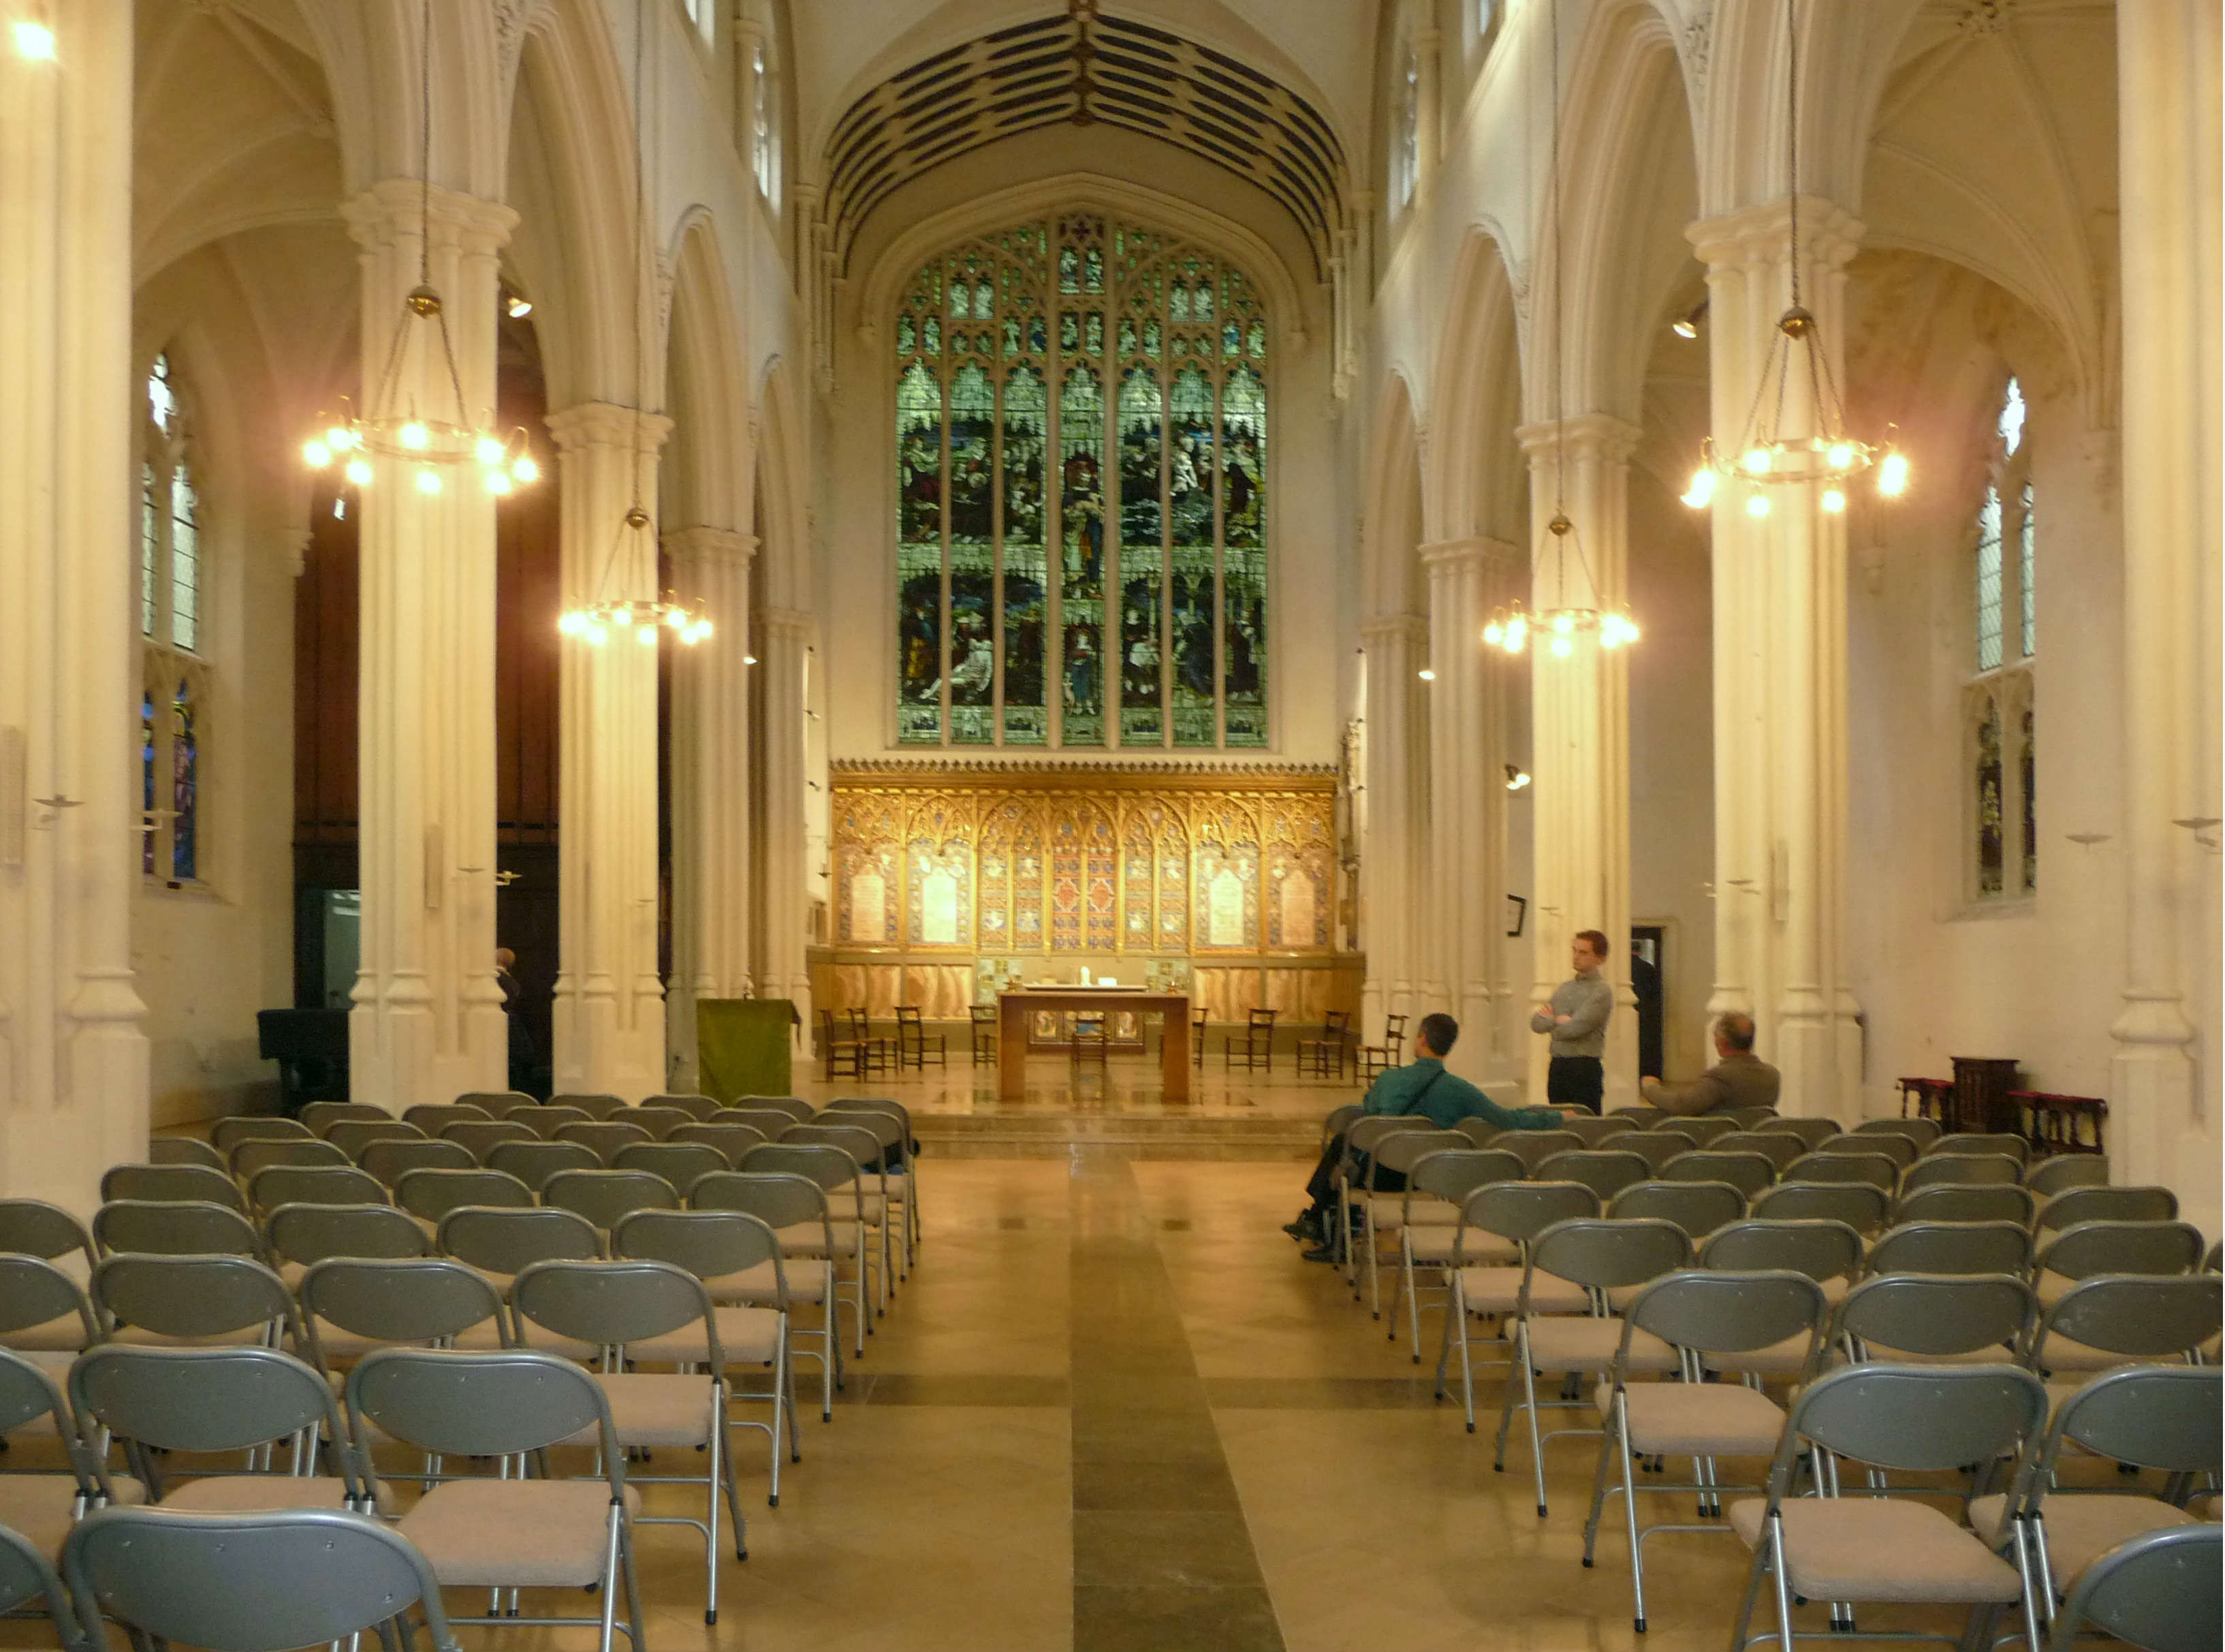 Image: St John's Hyde Park: view of the nave